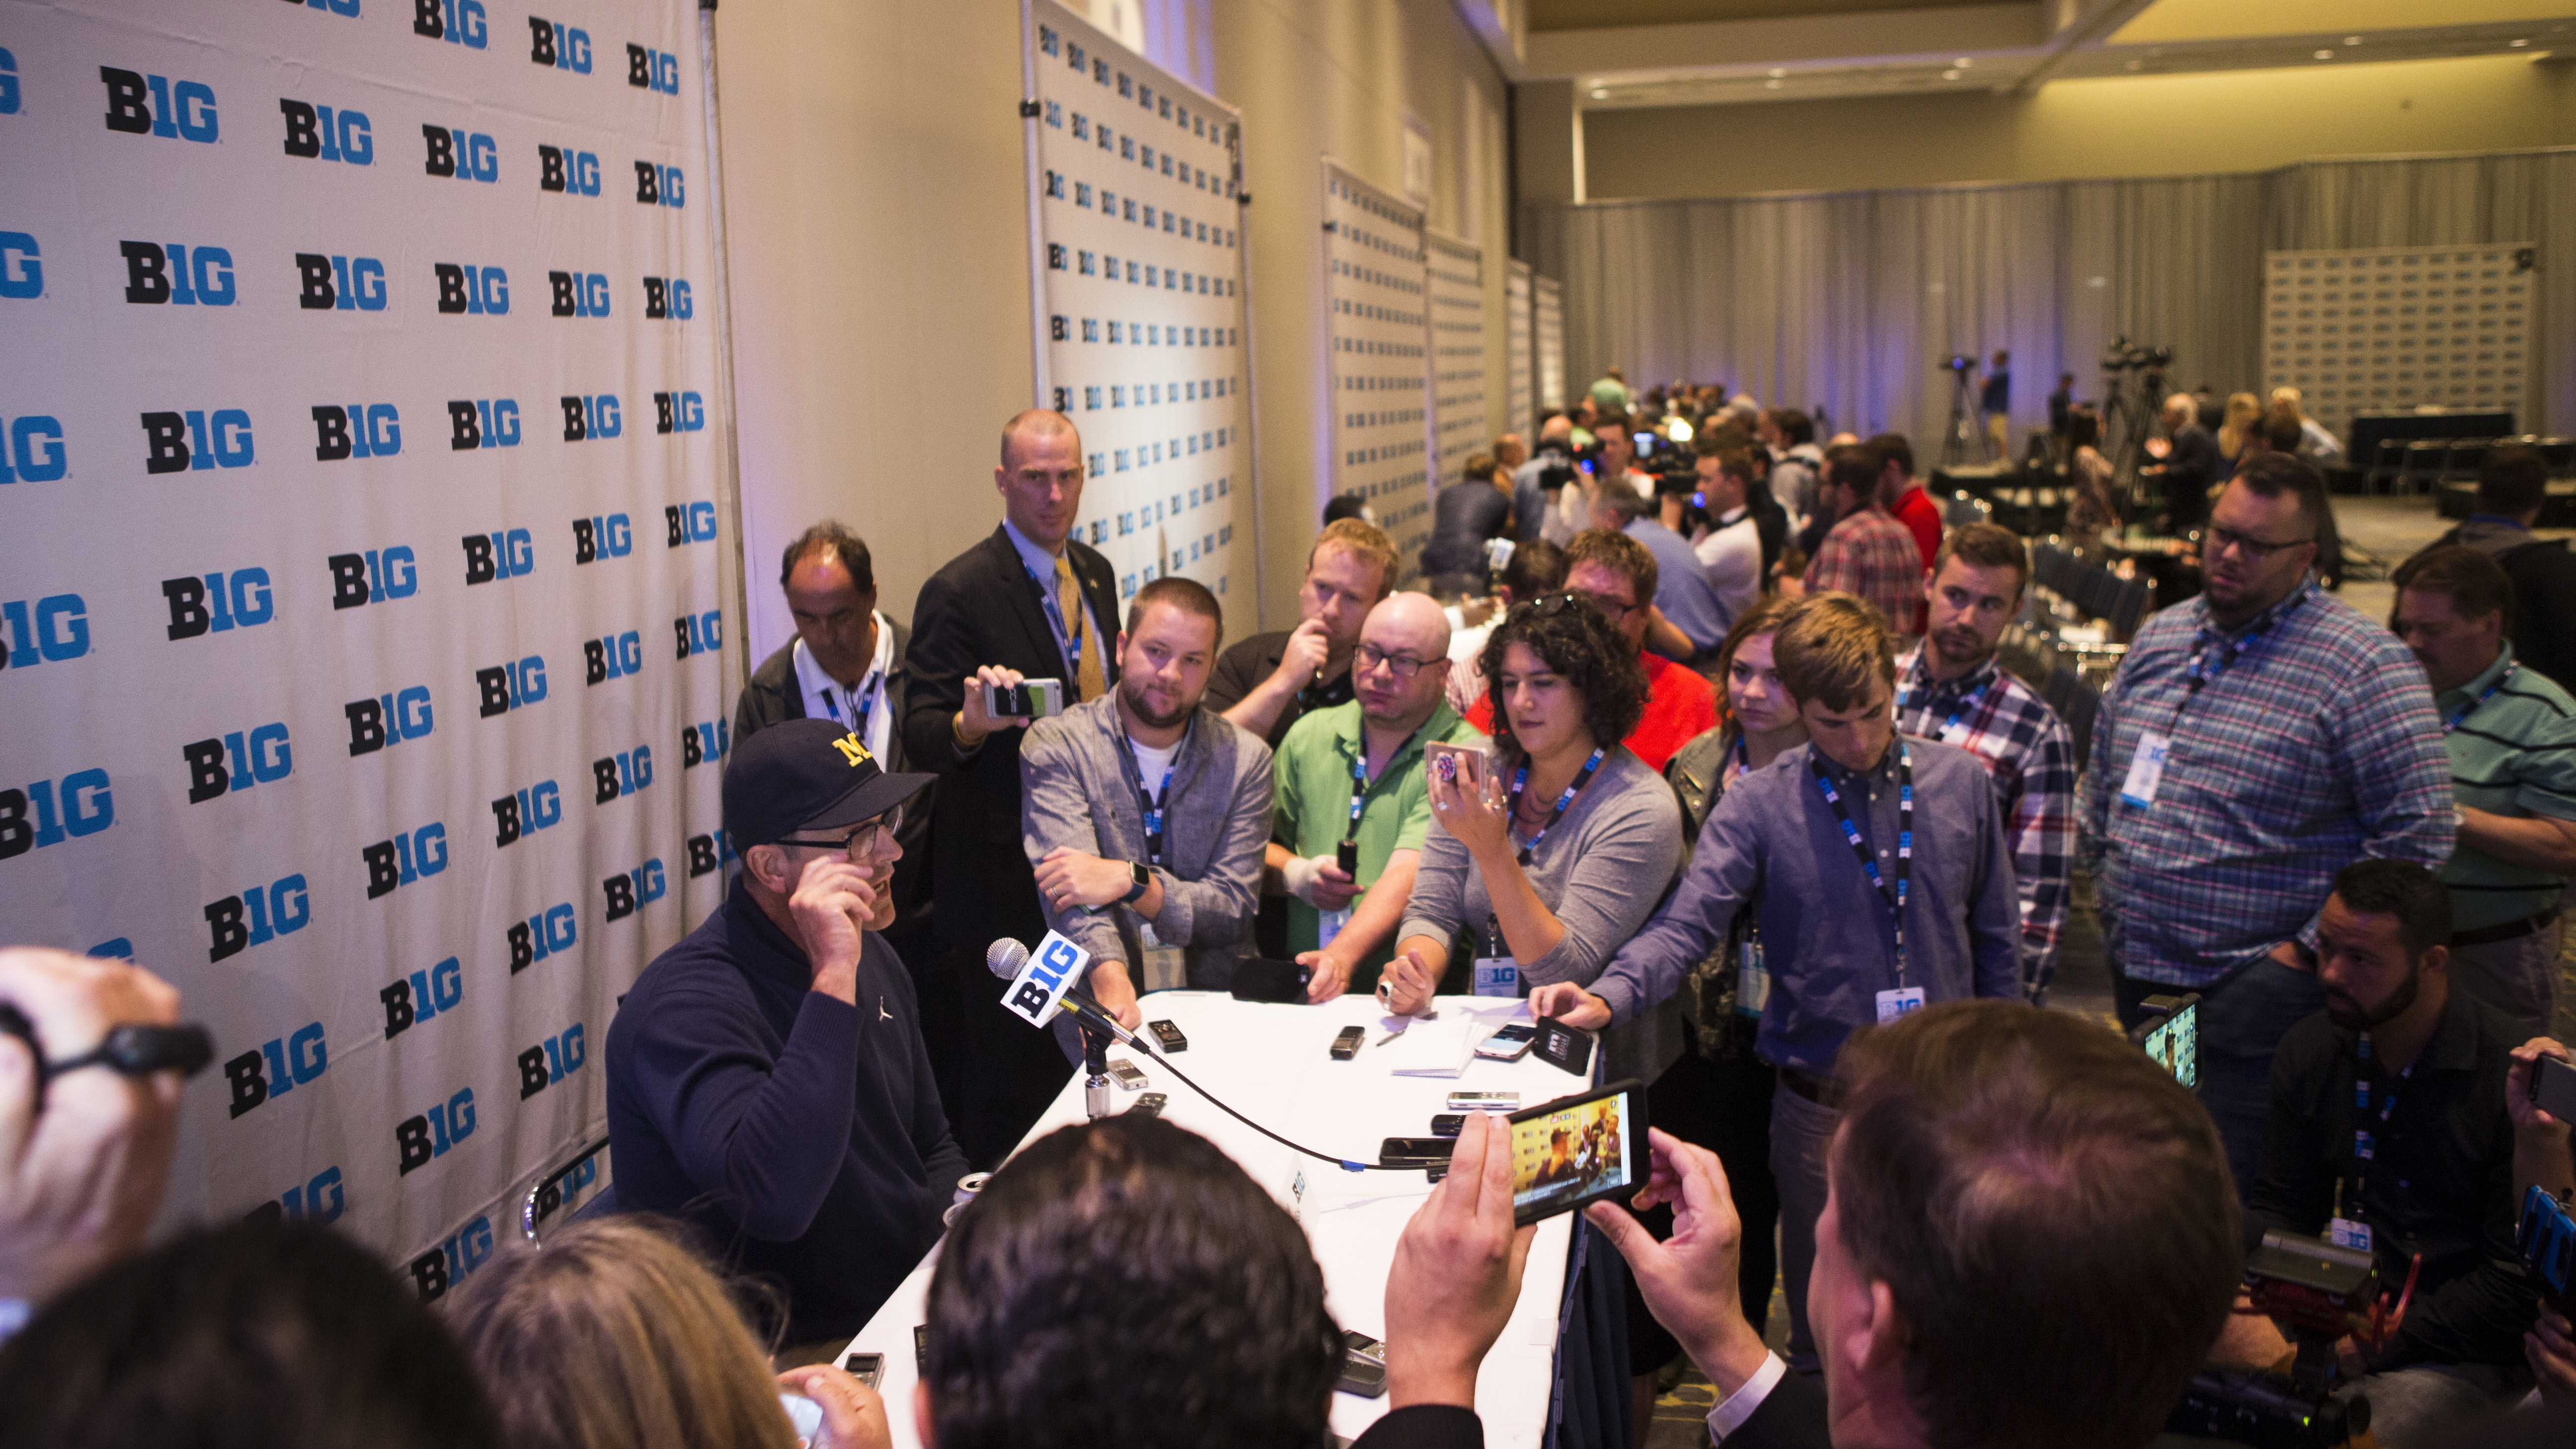 Michigan head coach Jim Harbaugh speaks with members of the media during the Big Ten Media Days at McCormick Place Convention Center in Chicago on Tuesday, July 25, 2017. (Joseph Cress/The Daily Iowan)